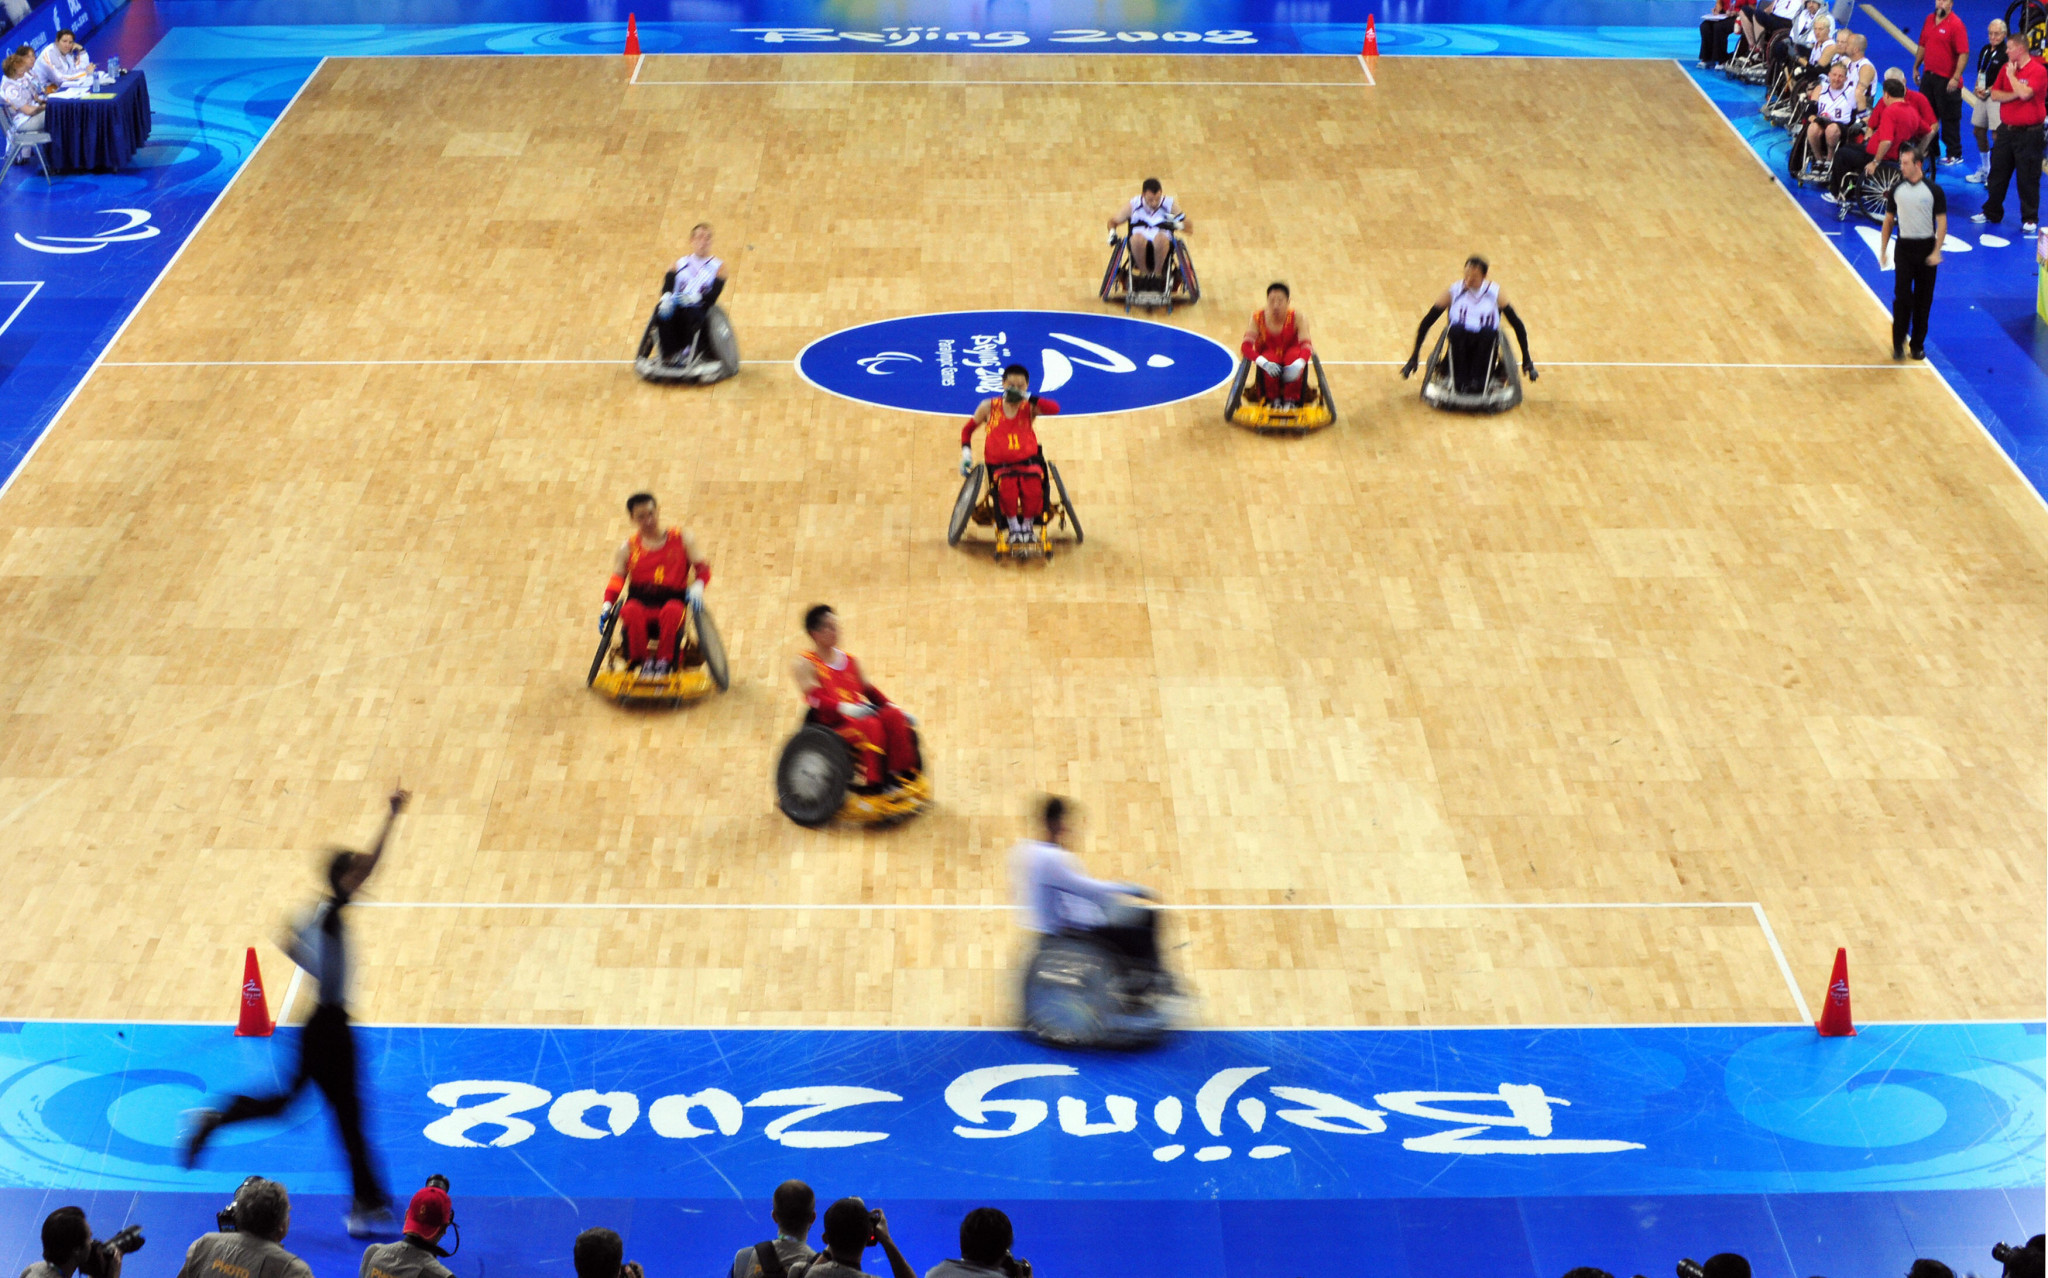 Long-serving wheelchair rugby officials will be eligible for recognition ©Getty Images